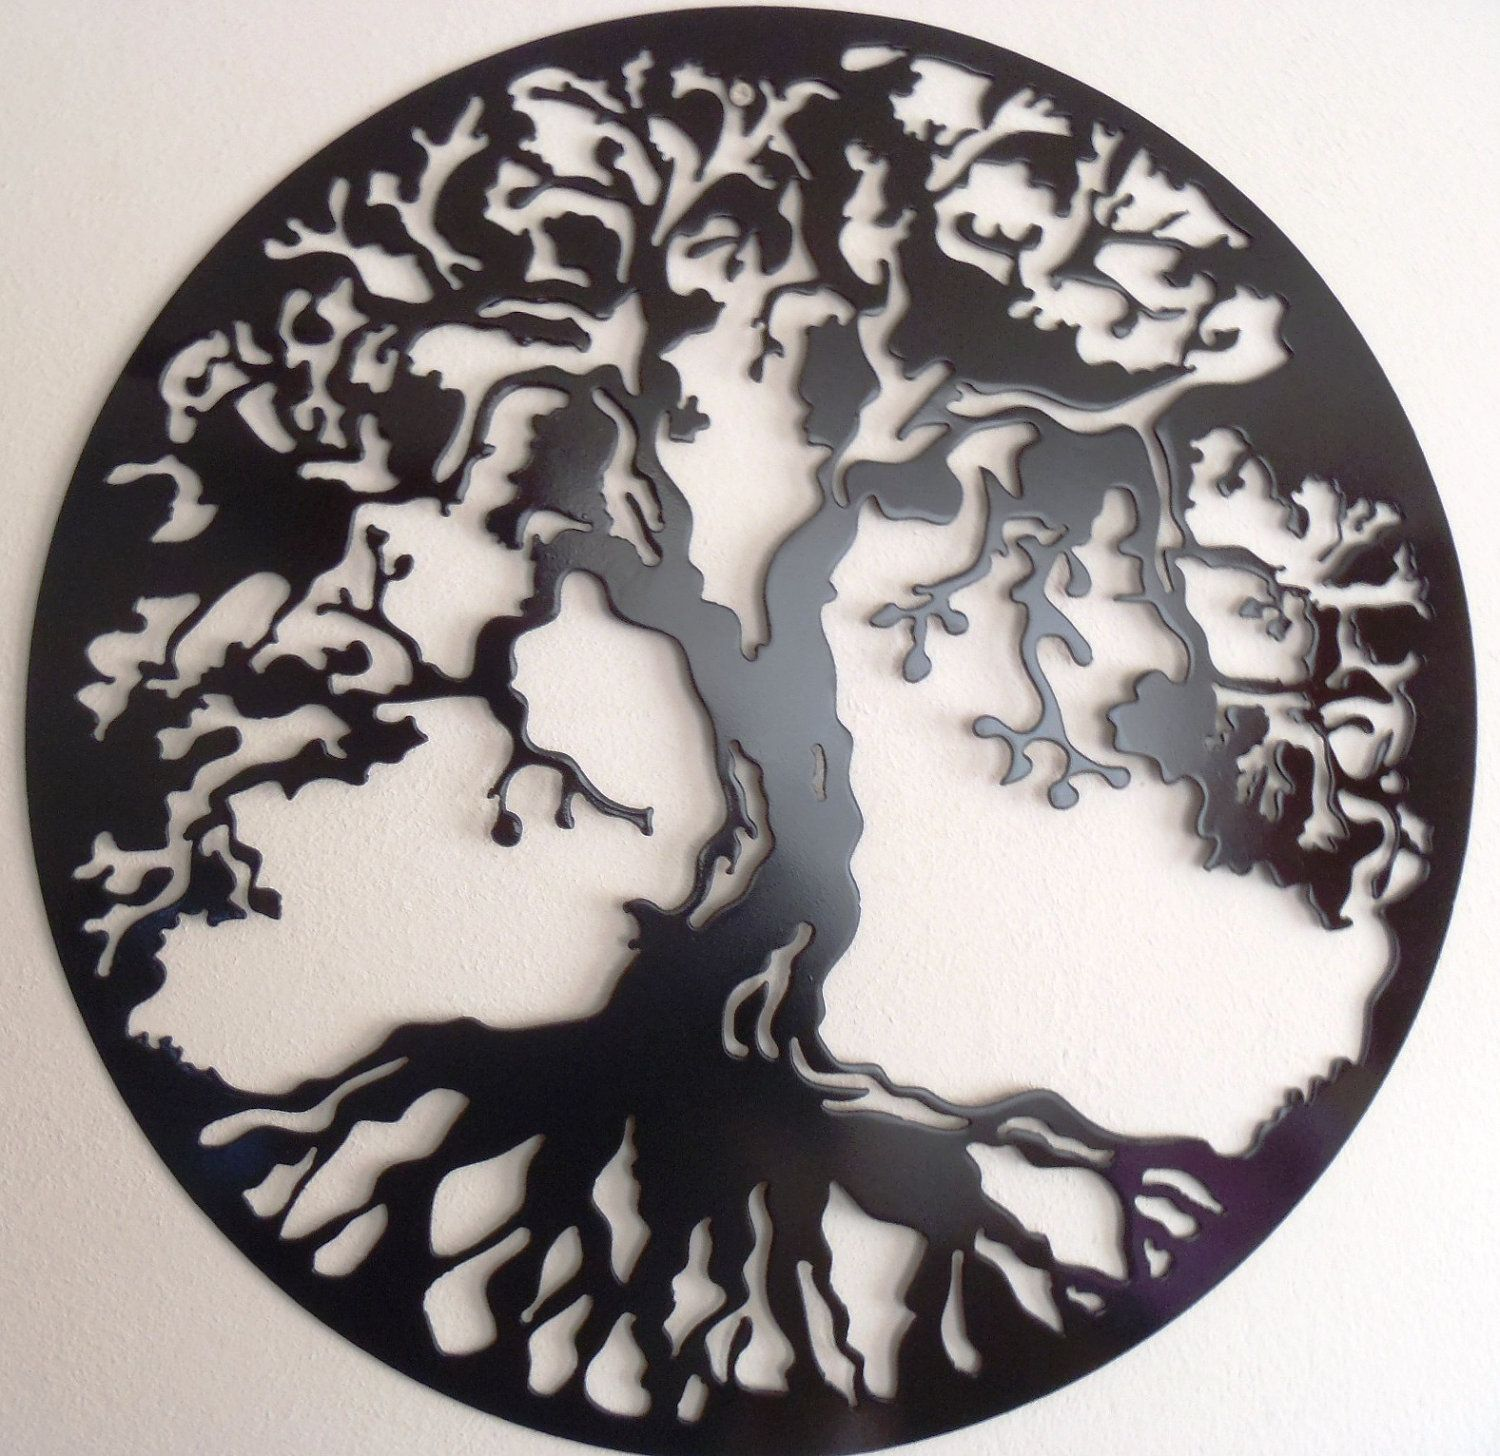 Tree Of Life Metal Wall Art Tree Of Life Large Wall Decor Metal Art  Black$32.00 Via